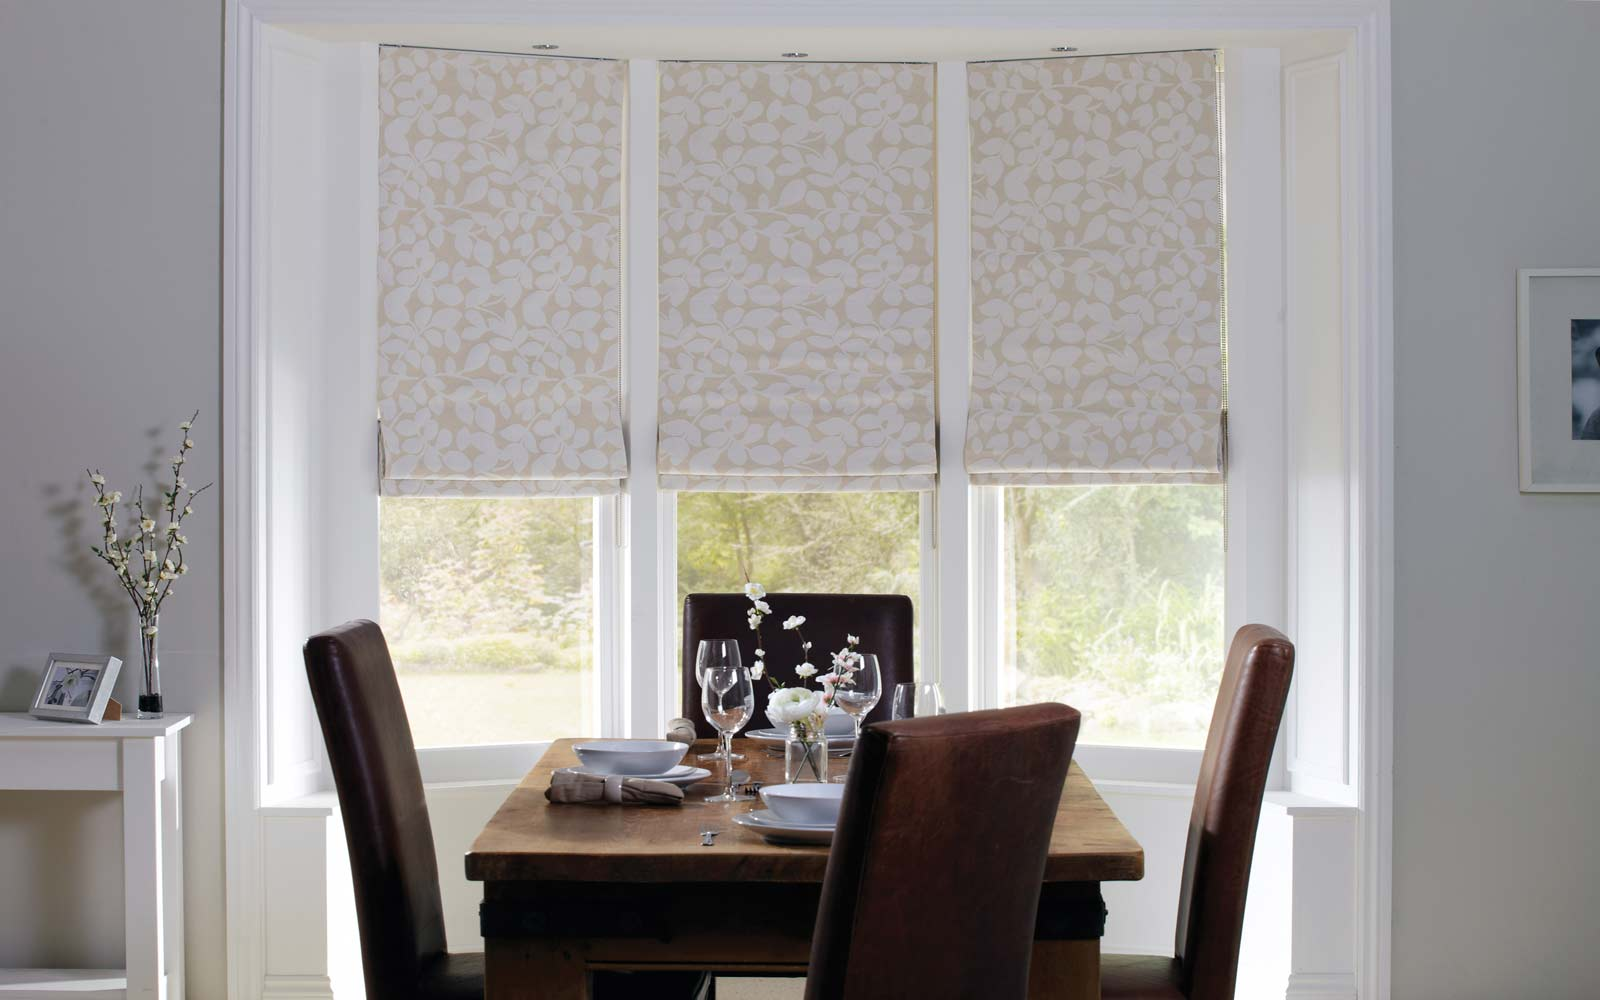 Best Blinds for a Bay Window